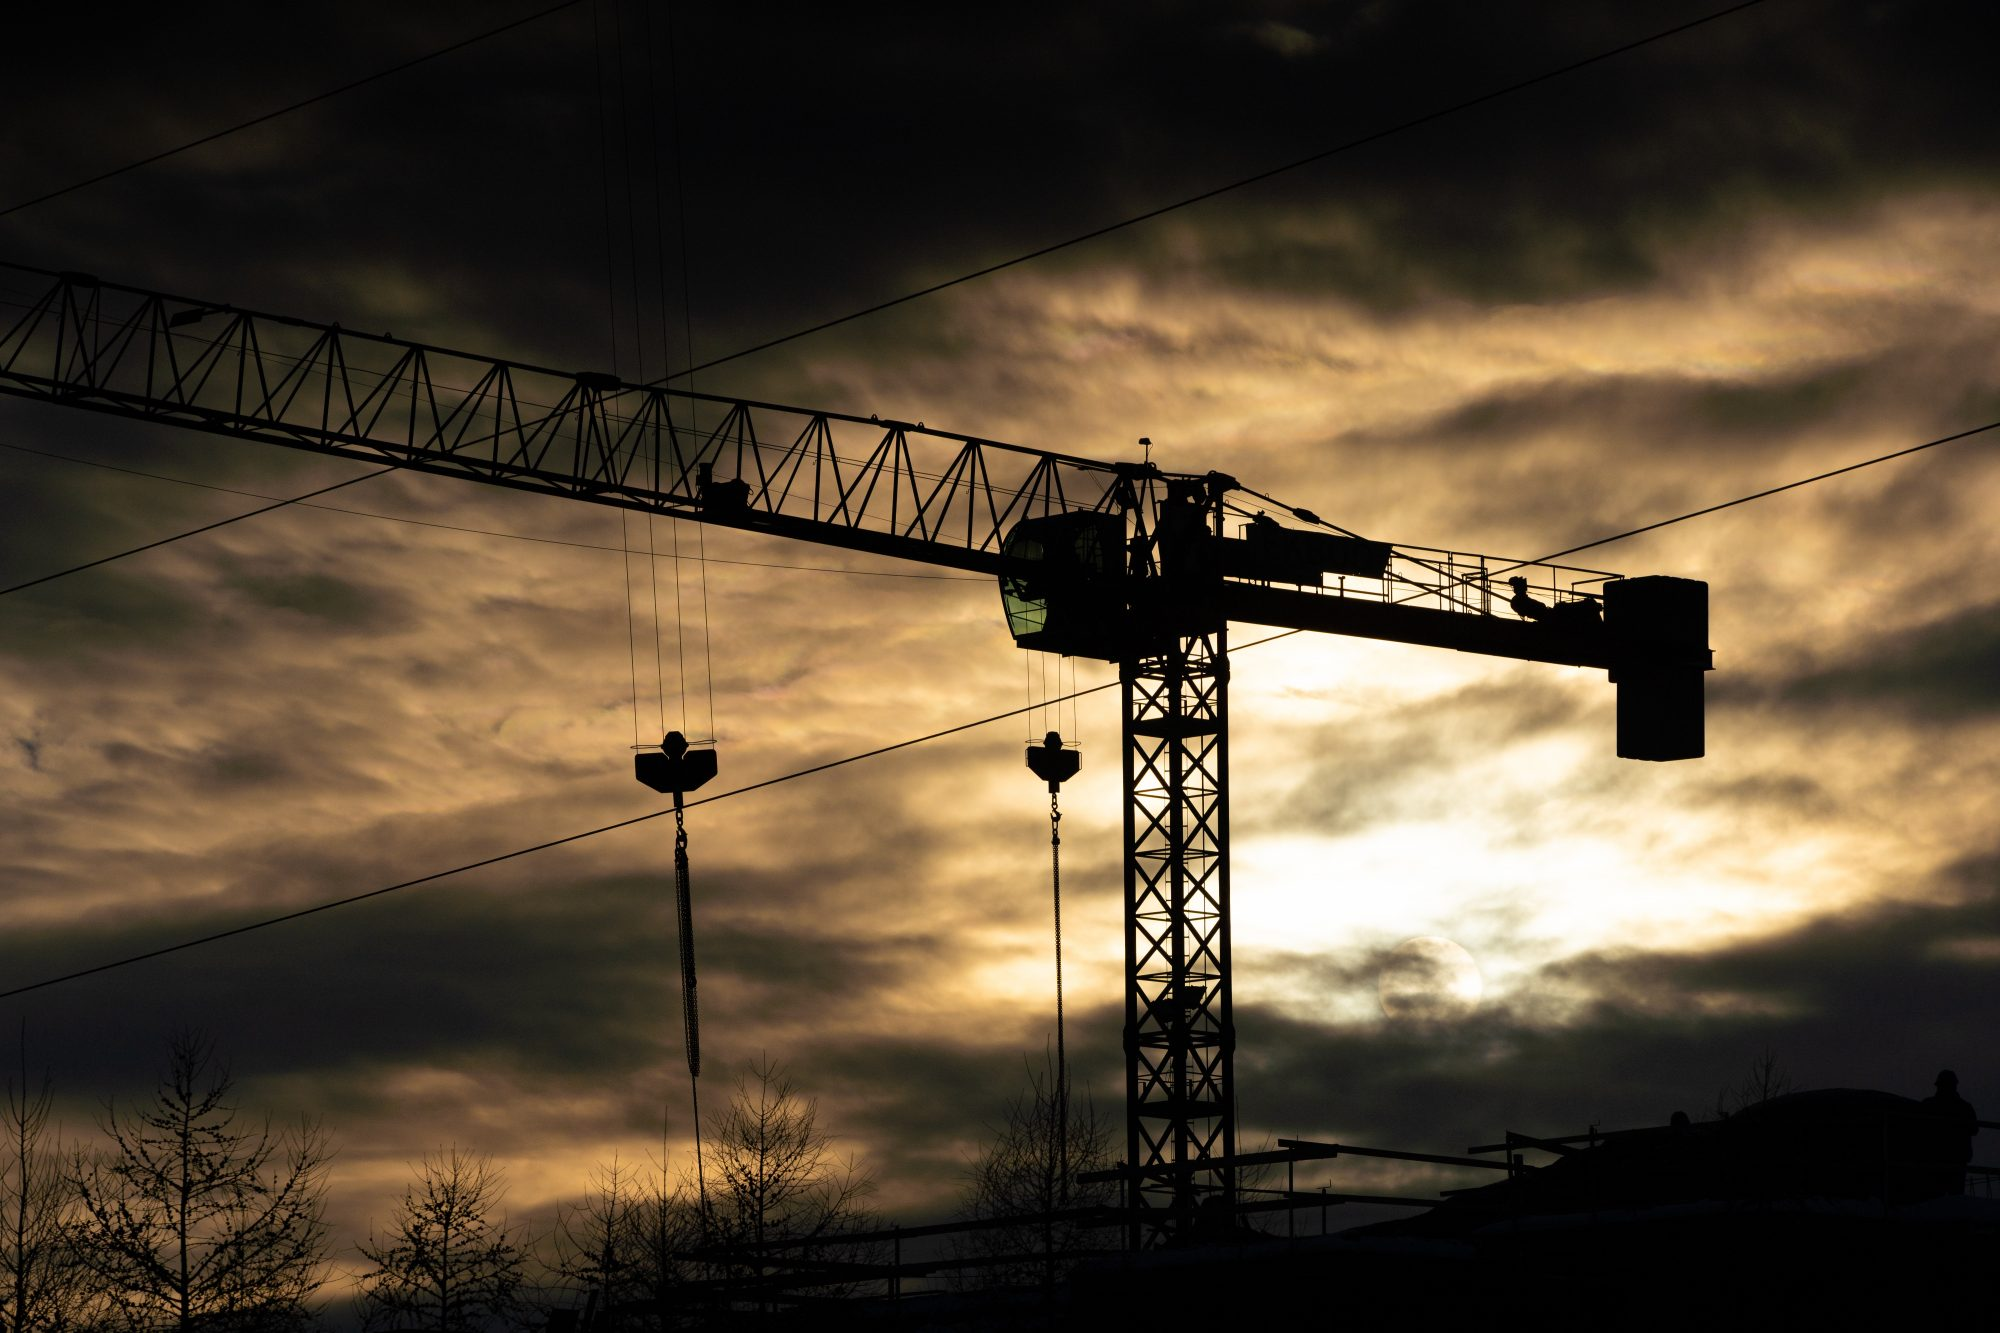 CITB begins search for new CEO